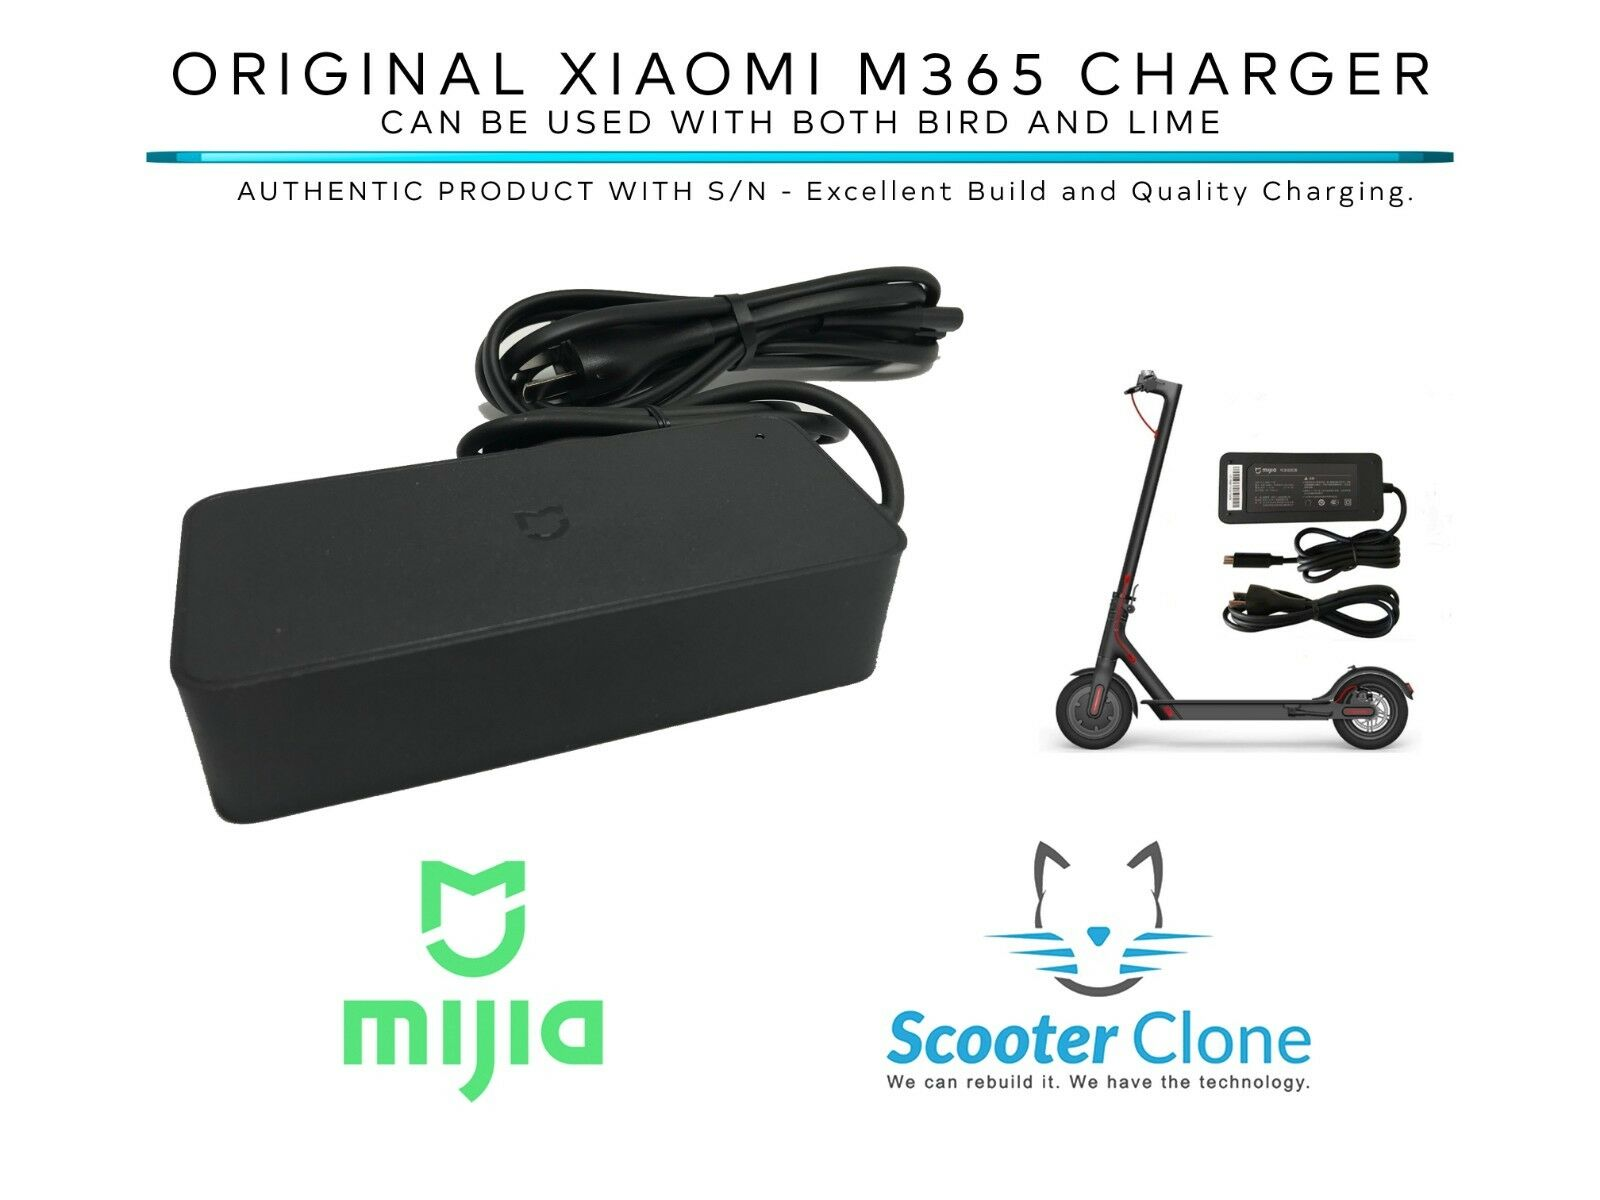 US SELLER - ORIGINAL Xiaomi M365 Battery Power Charger used for BIRD   LIME